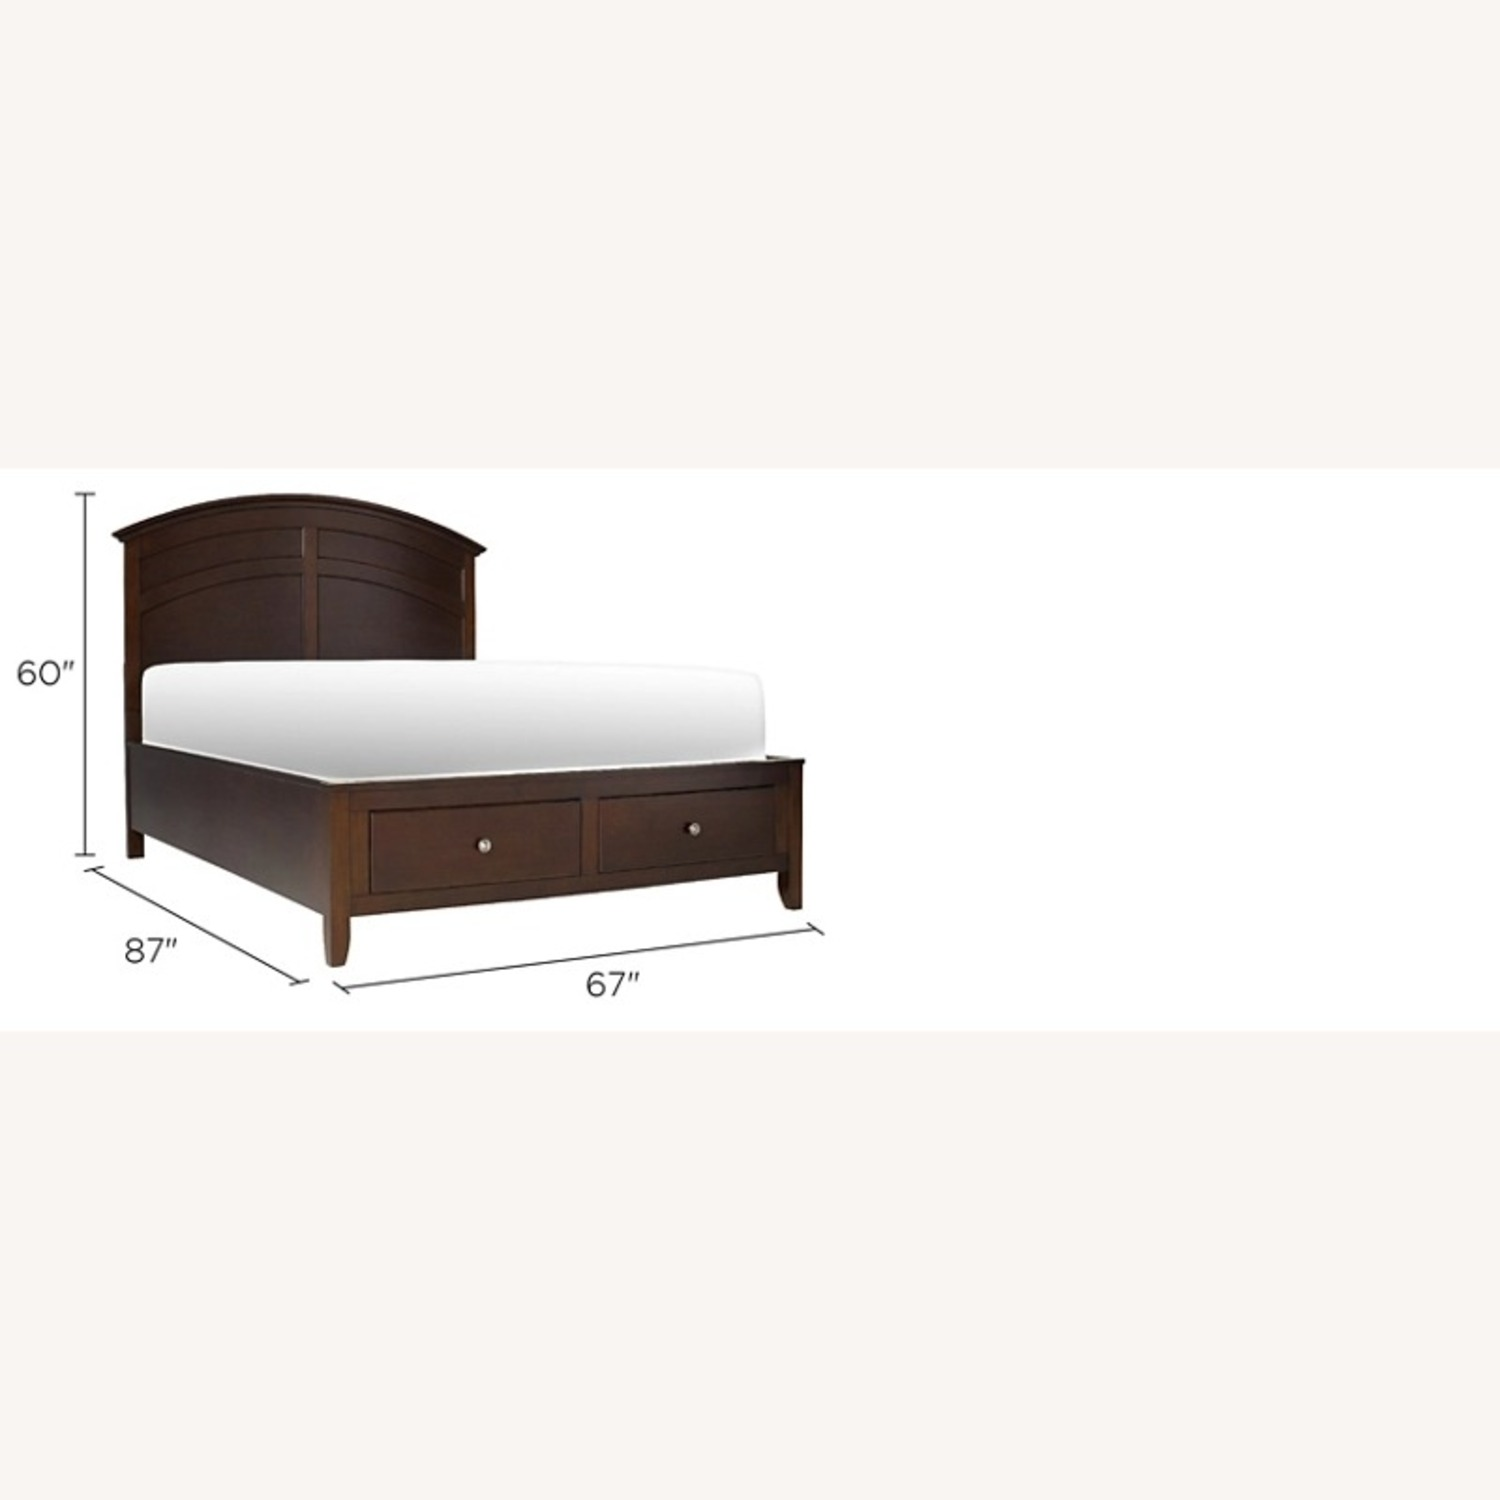 Raymour & Flanigan Kylie Storage Bed - image-8